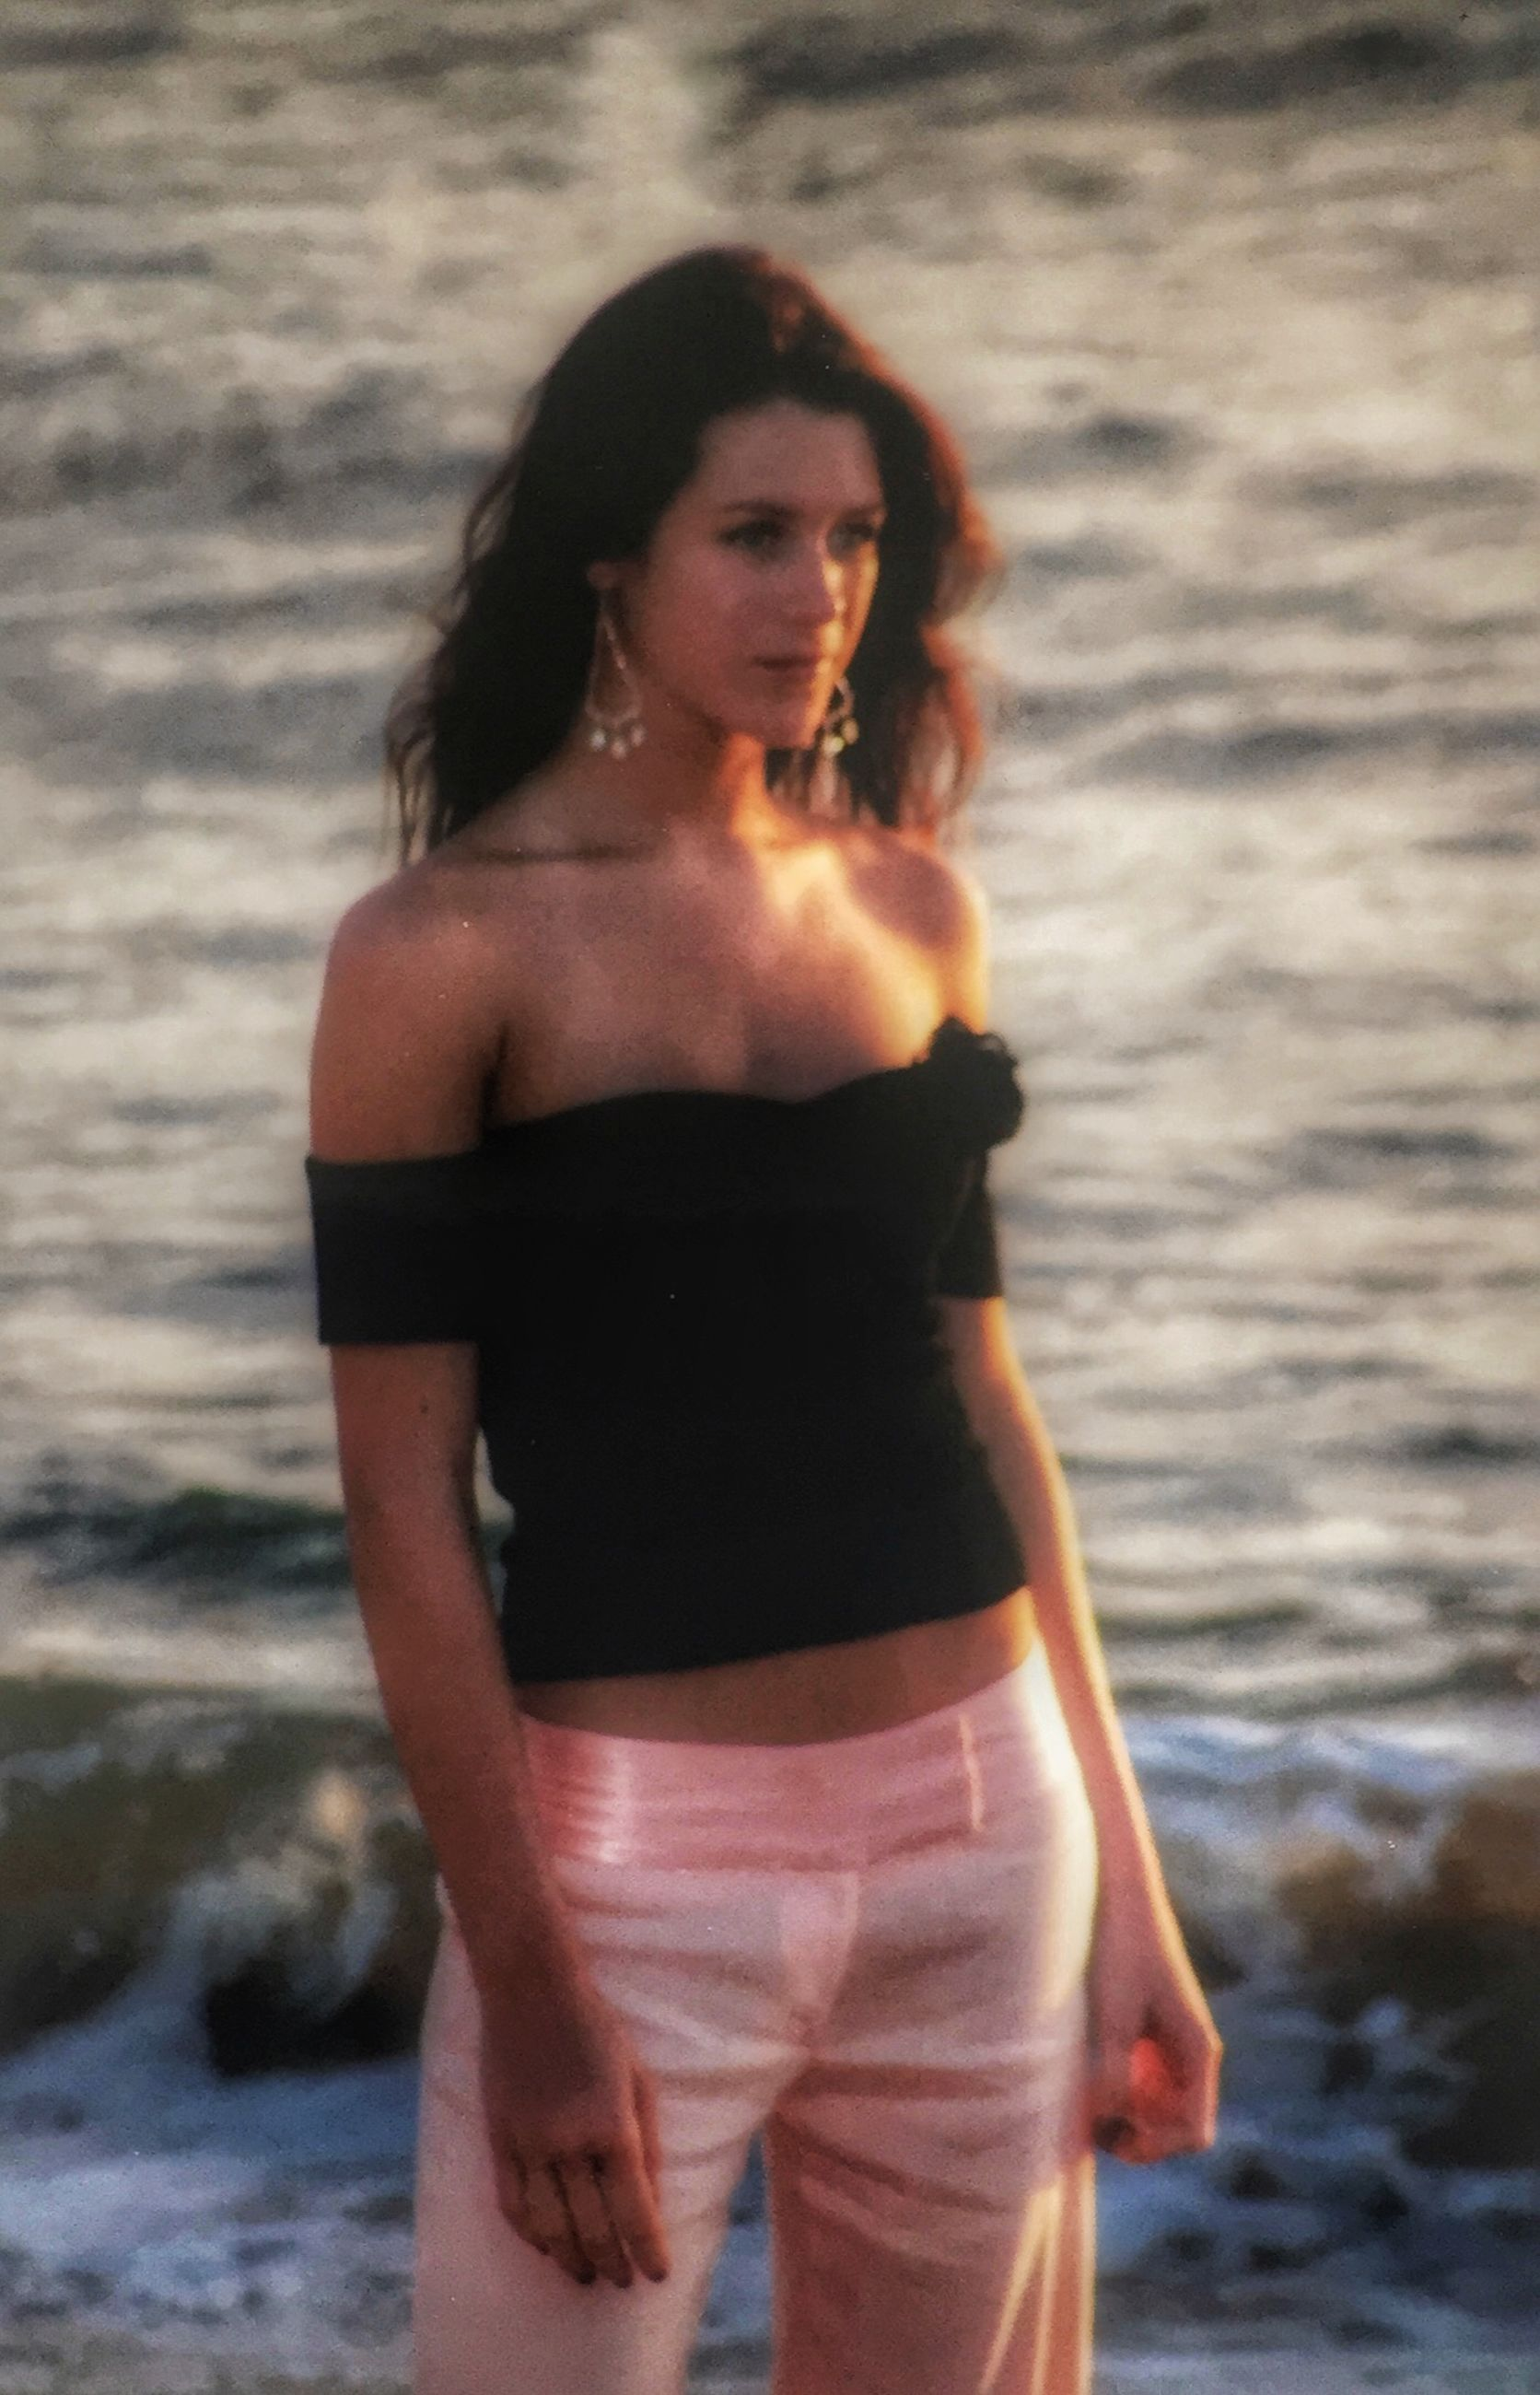 young adult, lifestyles, person, leisure activity, young women, water, casual clothing, looking at camera, standing, portrait, three quarter length, front view, sea, focus on foreground, smiling, happiness, beach